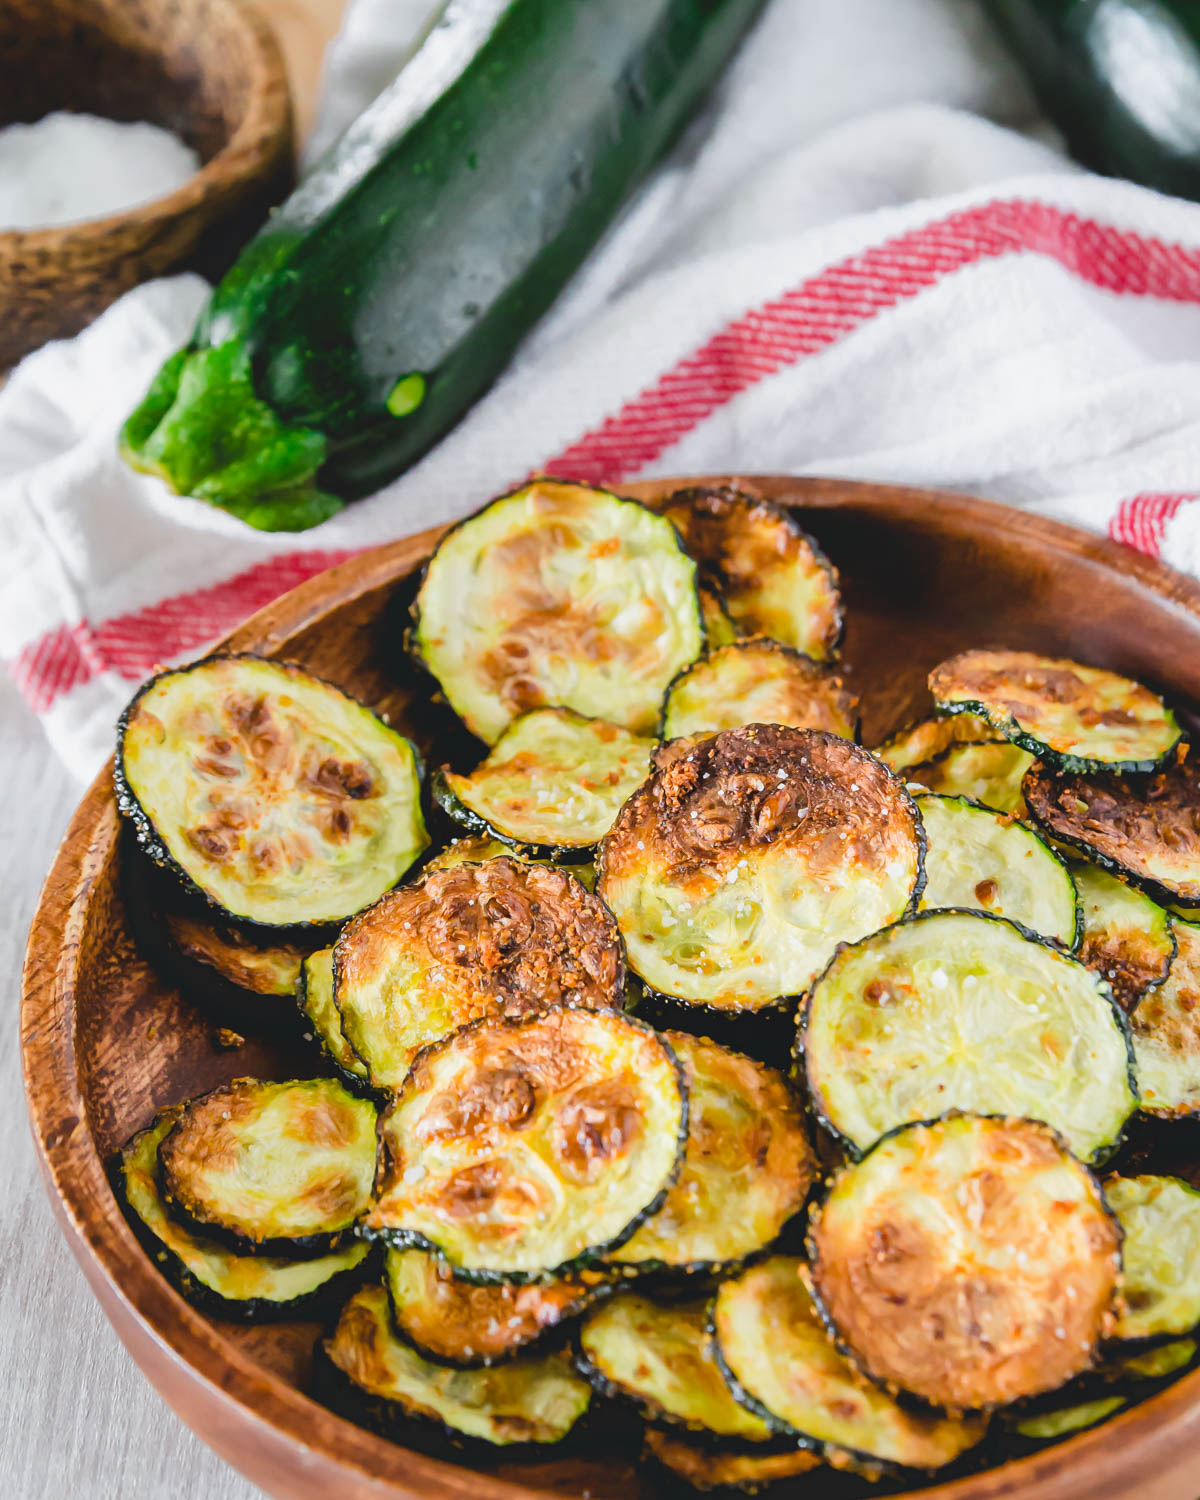 Crispy air fried zucchini chips on a plate seasoned with garlic powder.